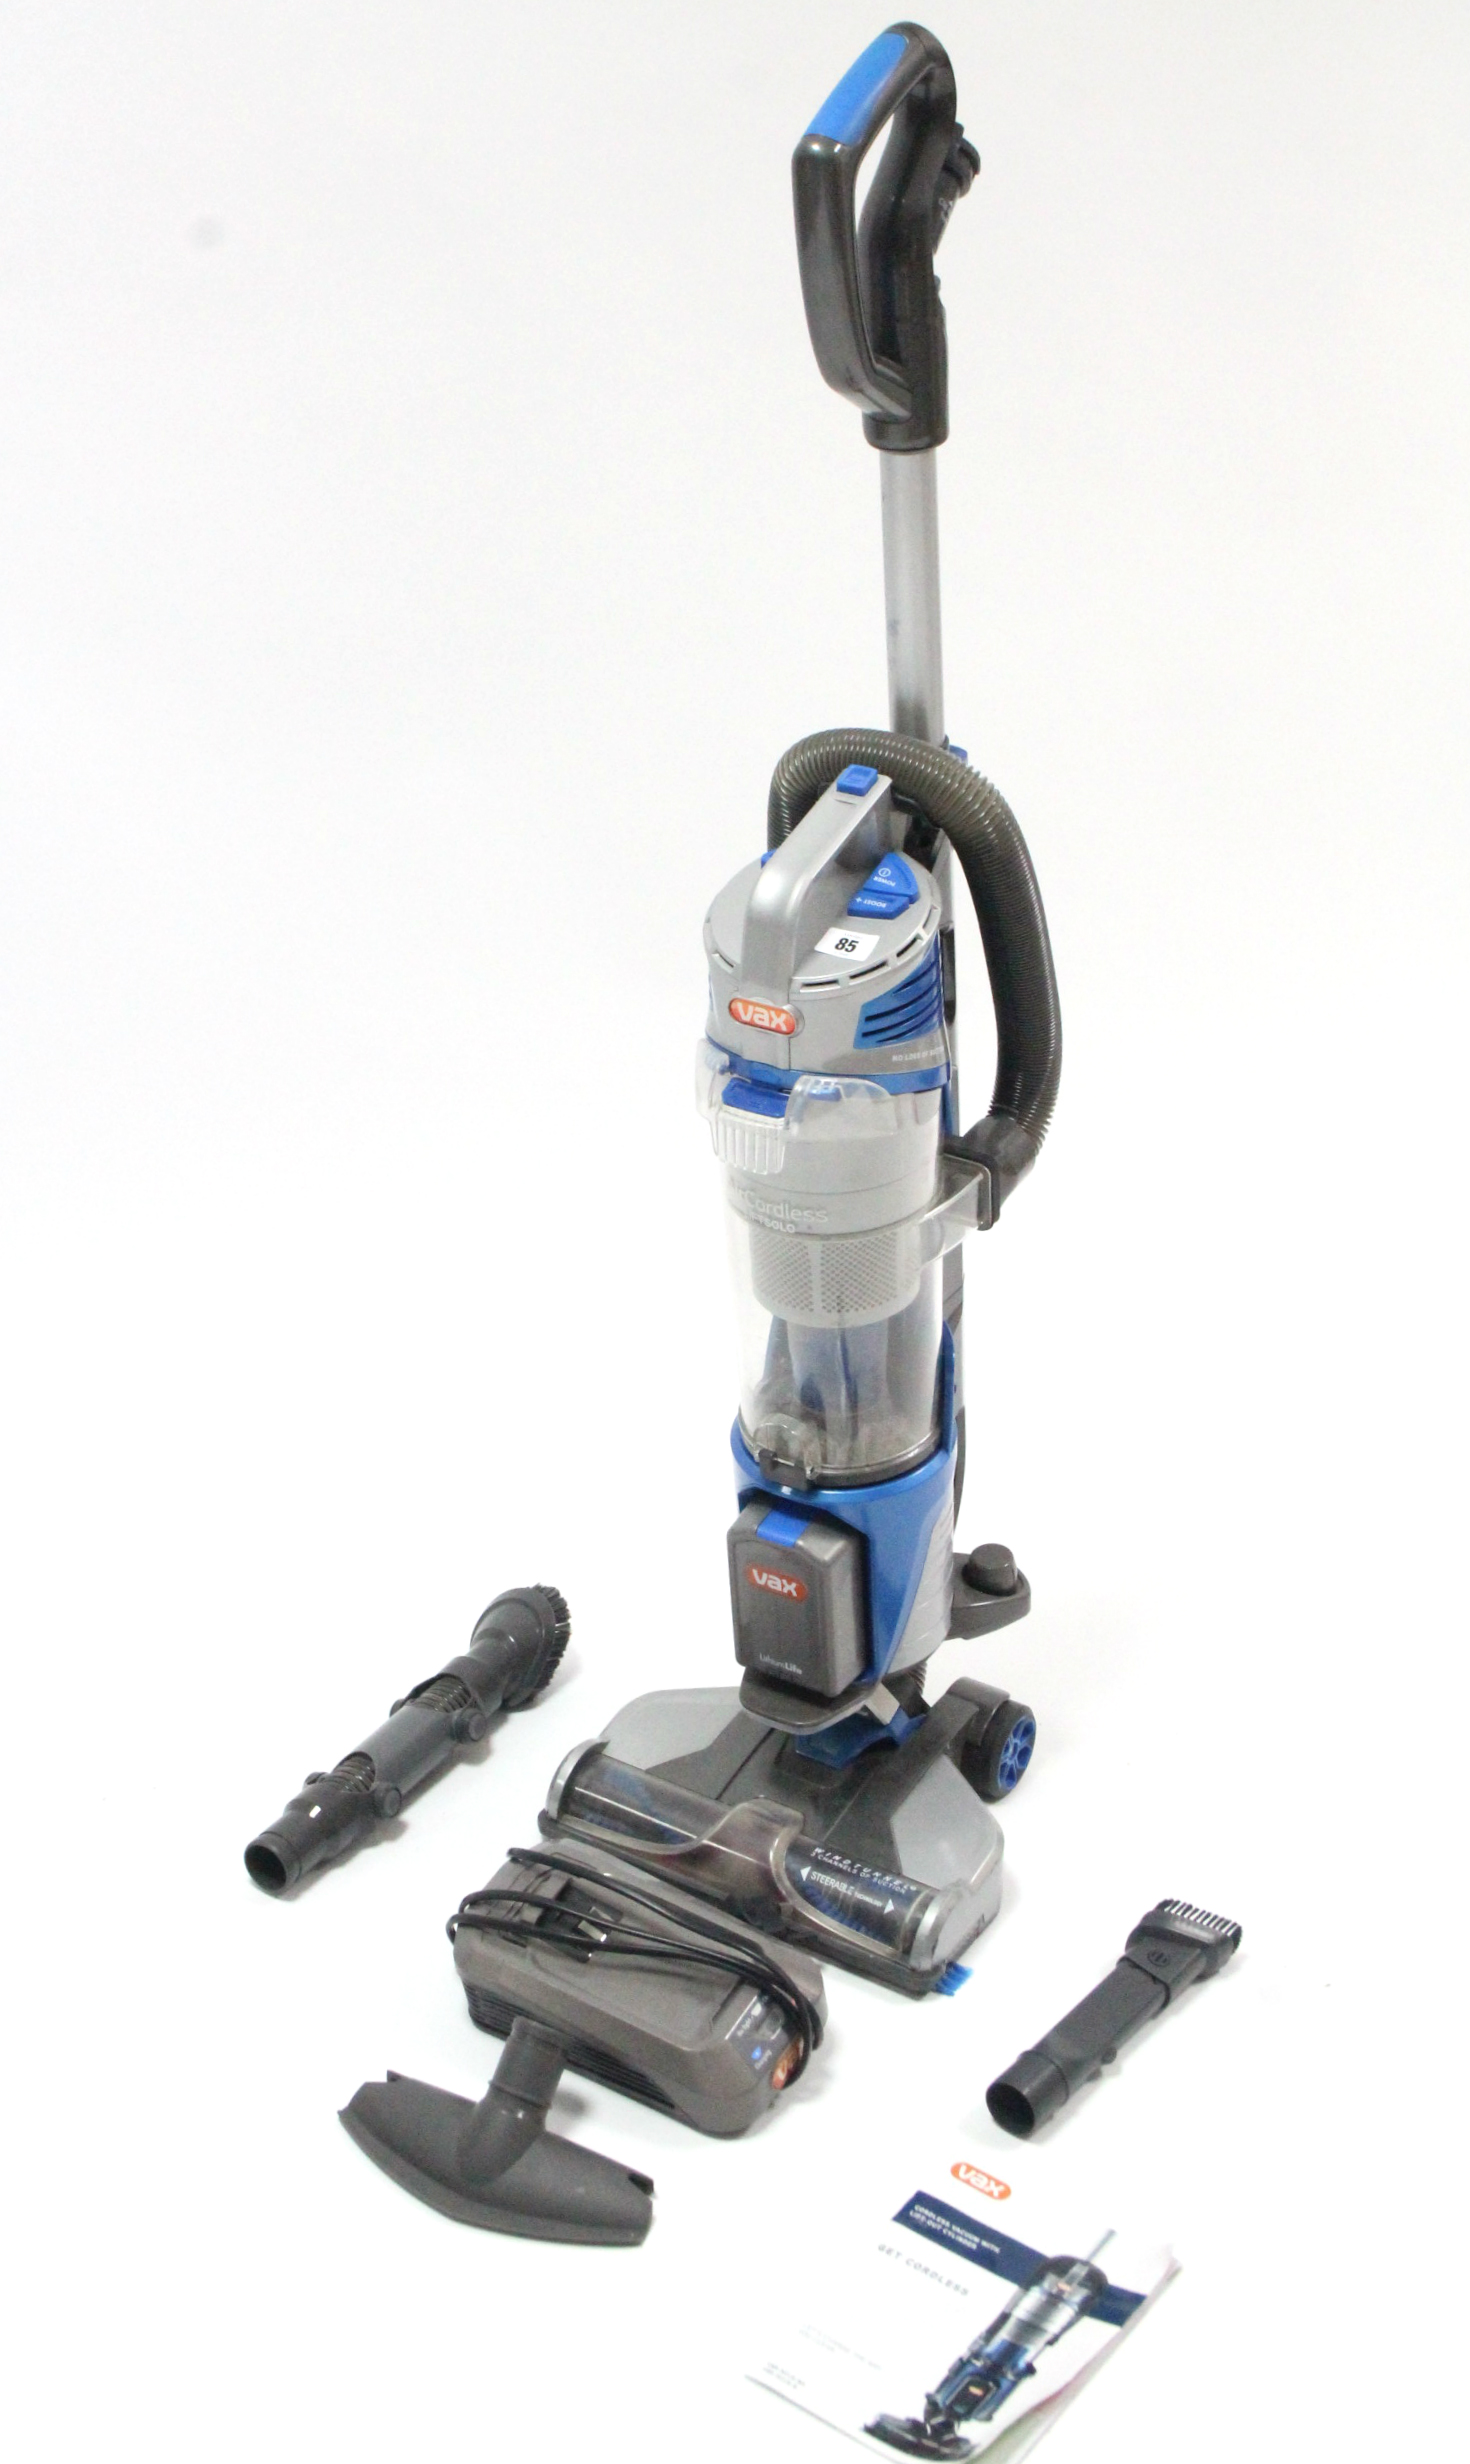 Lot 85 - A Vax upright vacuum cleaner, w.o.